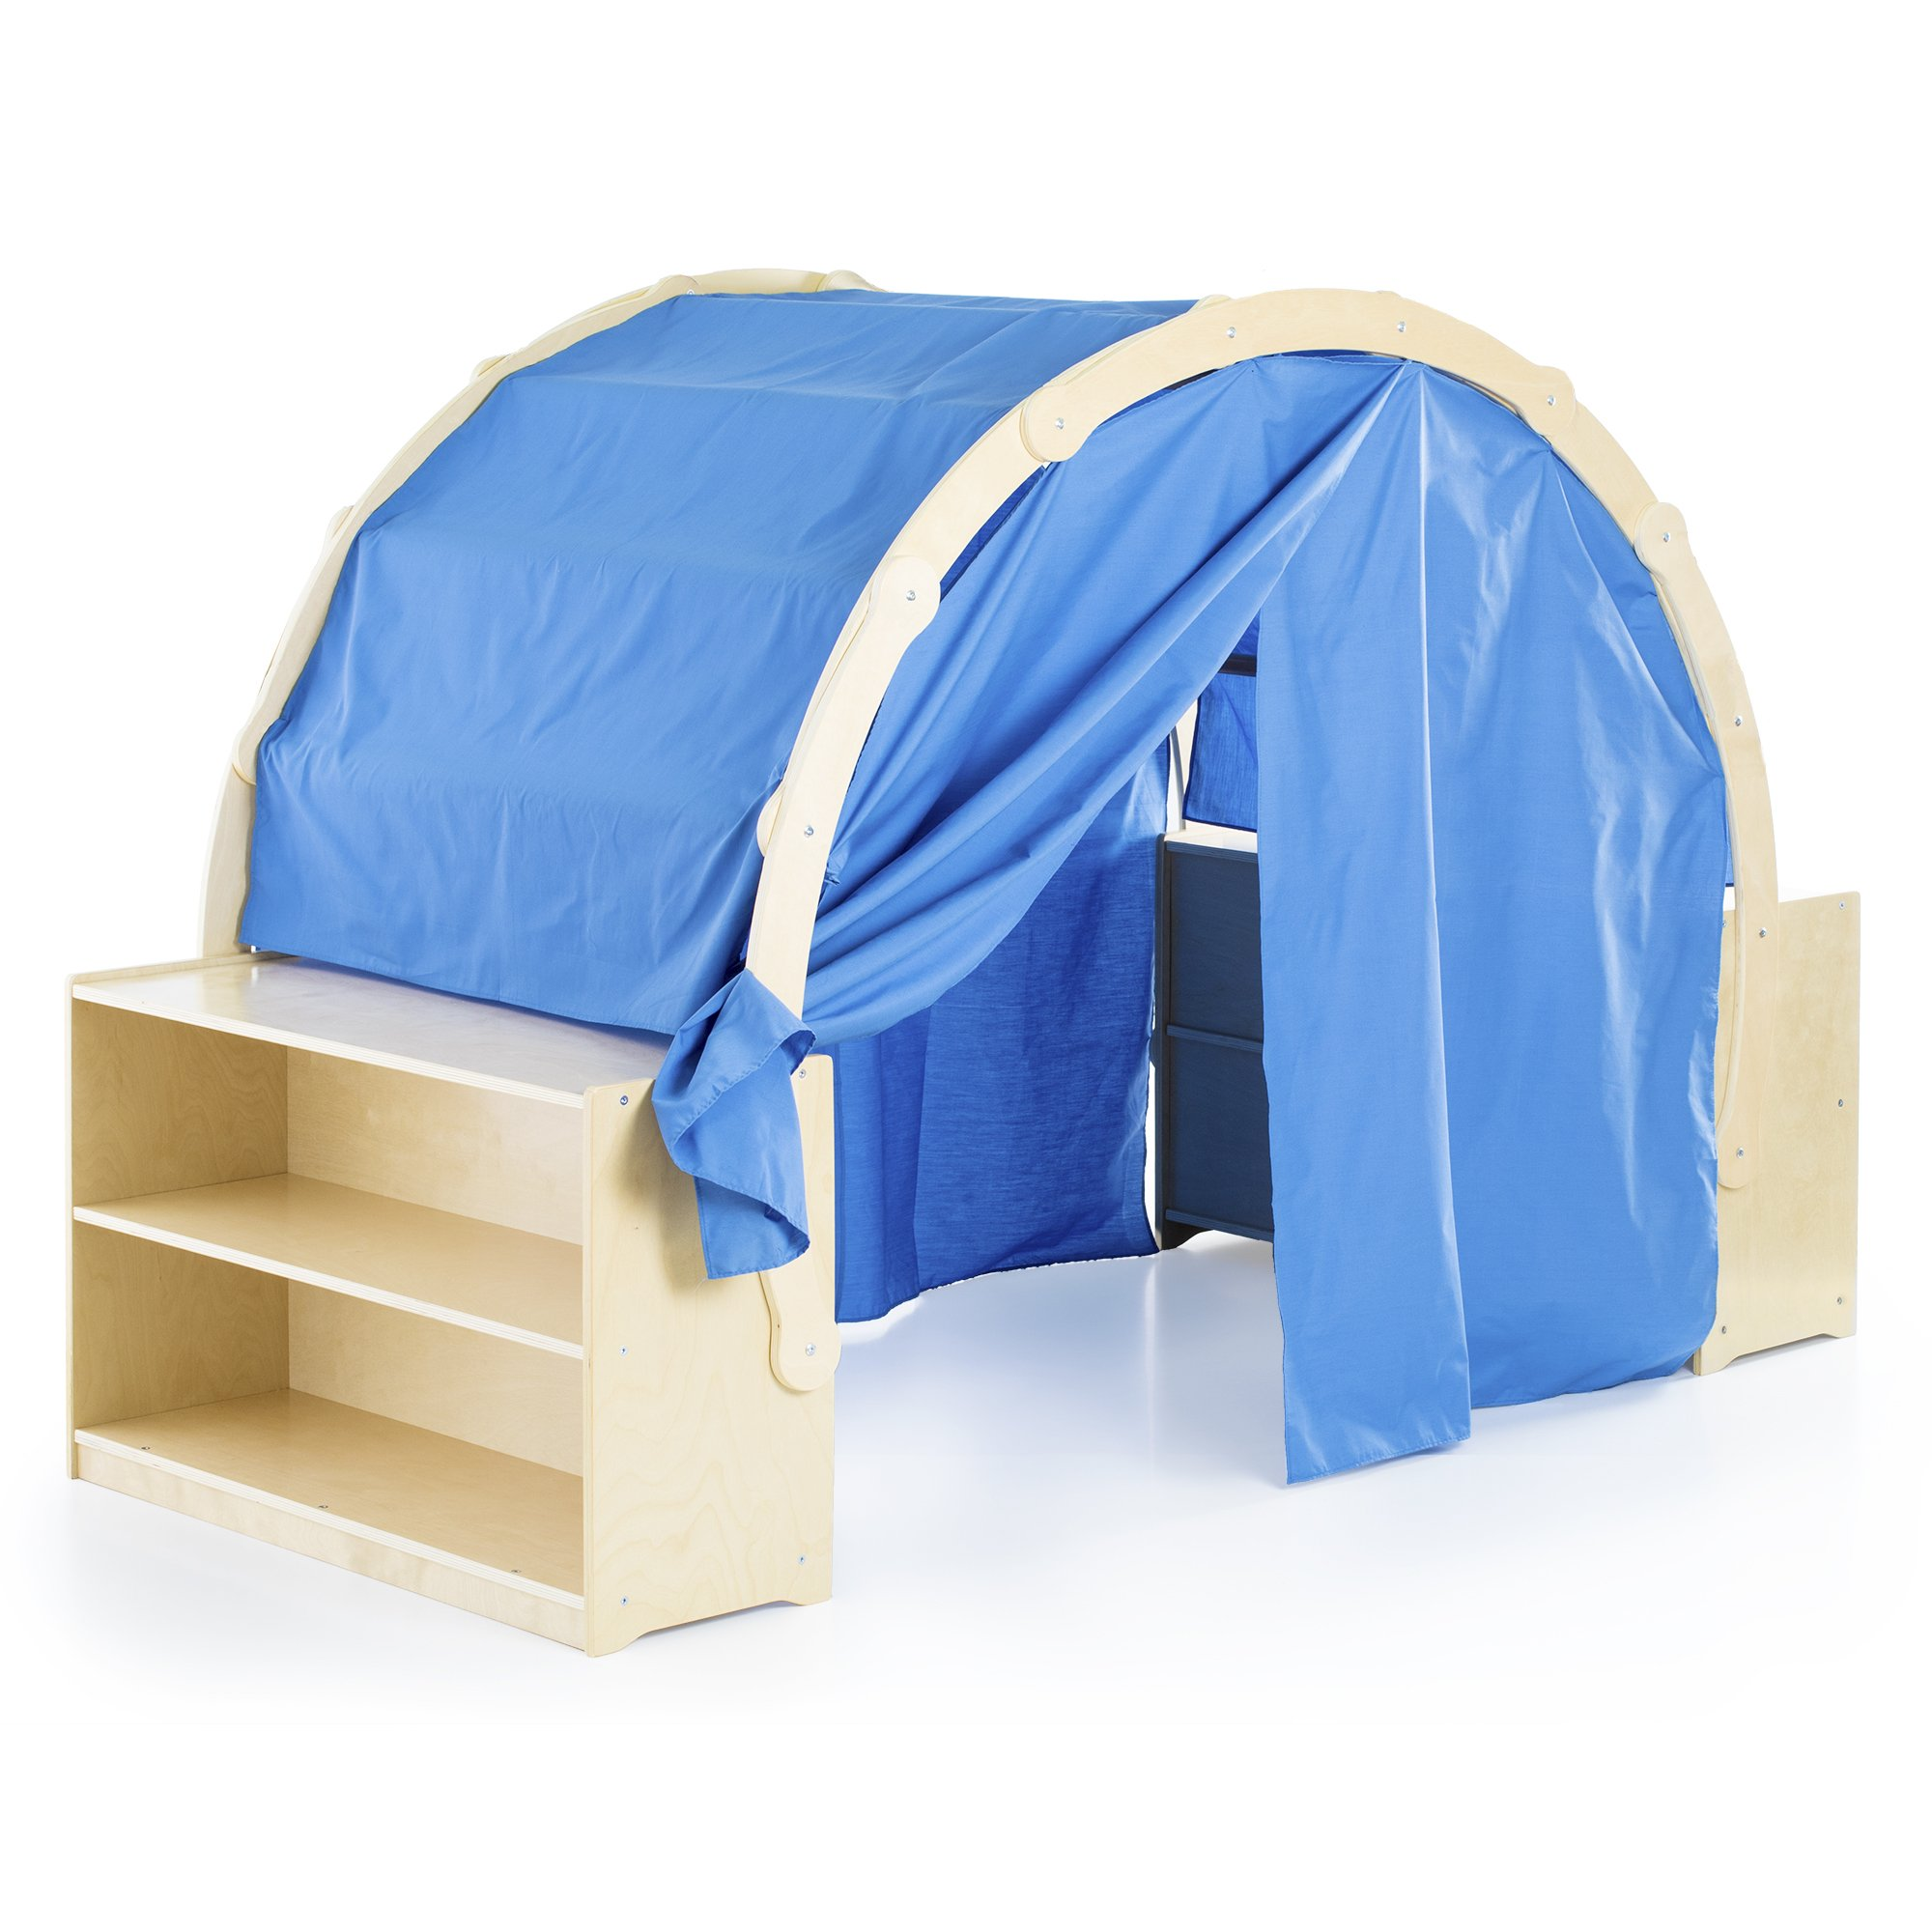 Guidecraft Playhouse Hideaway Bookshelves - Kids' Classroom Reading Tent with Blue Curtains, Dramatic Play, Storage - School Supply Kids Furniture